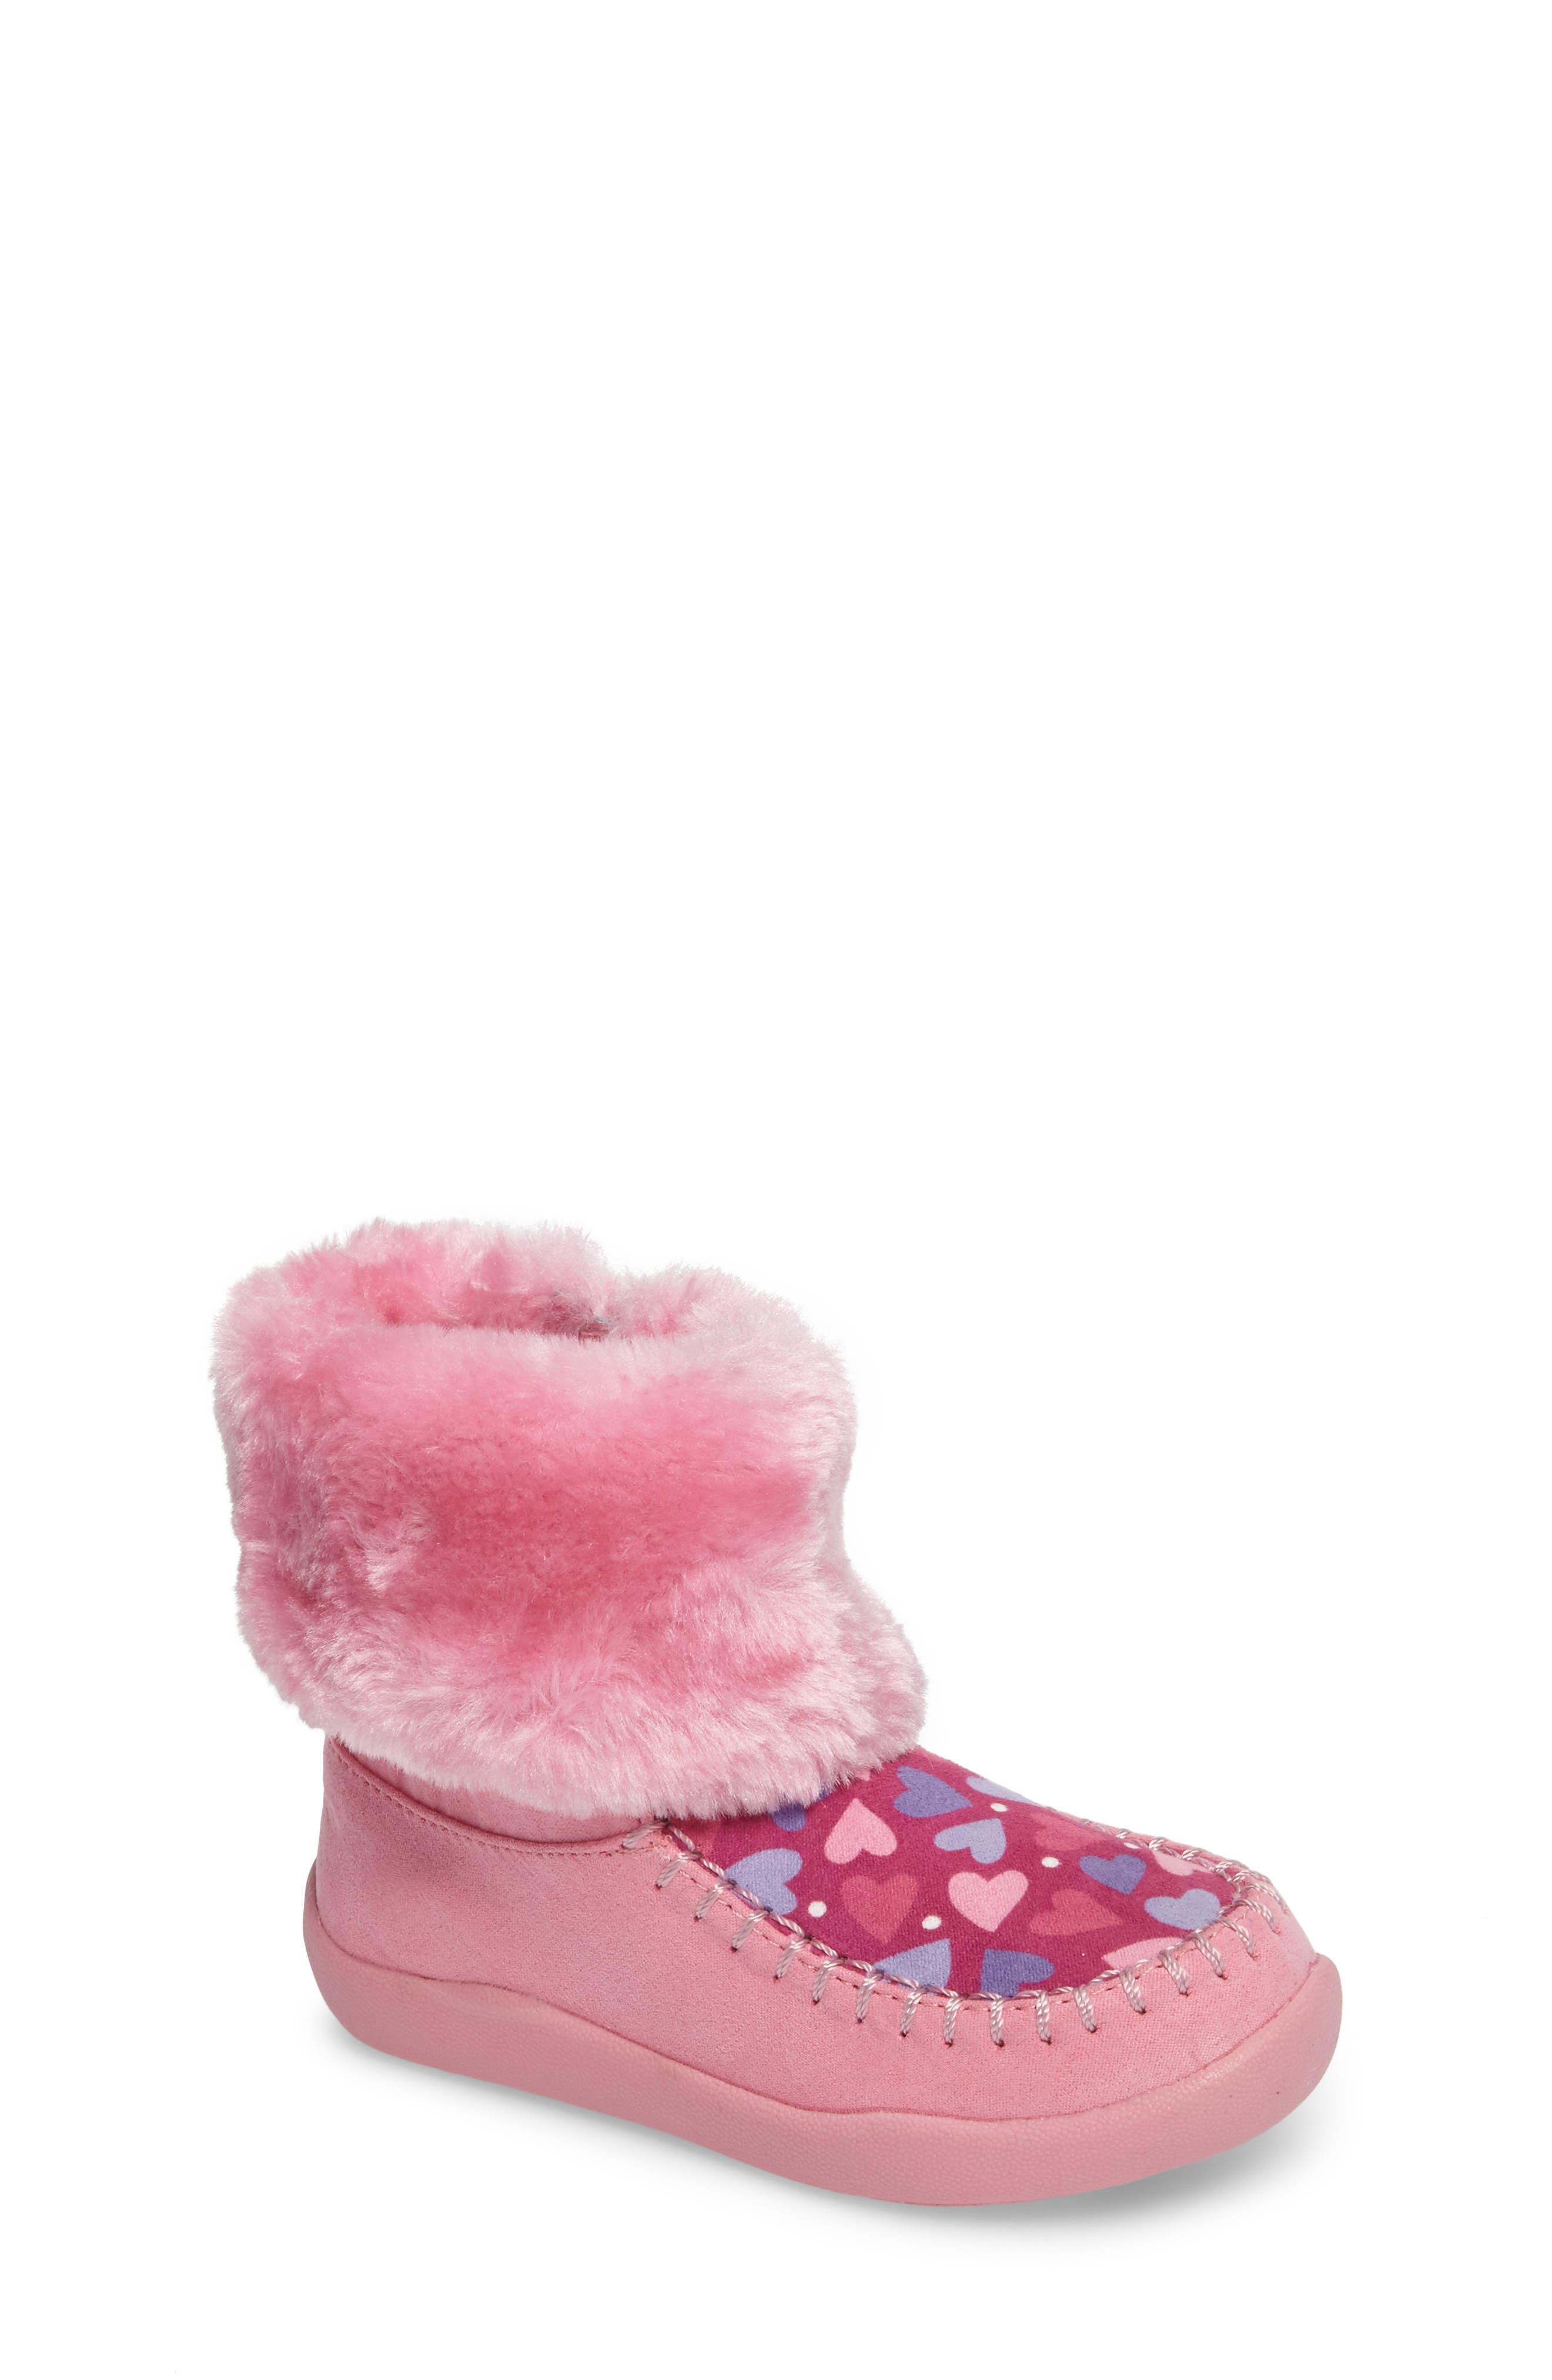 CHOOZE Comfy Faux Fur Patterned Boot (Toddler)